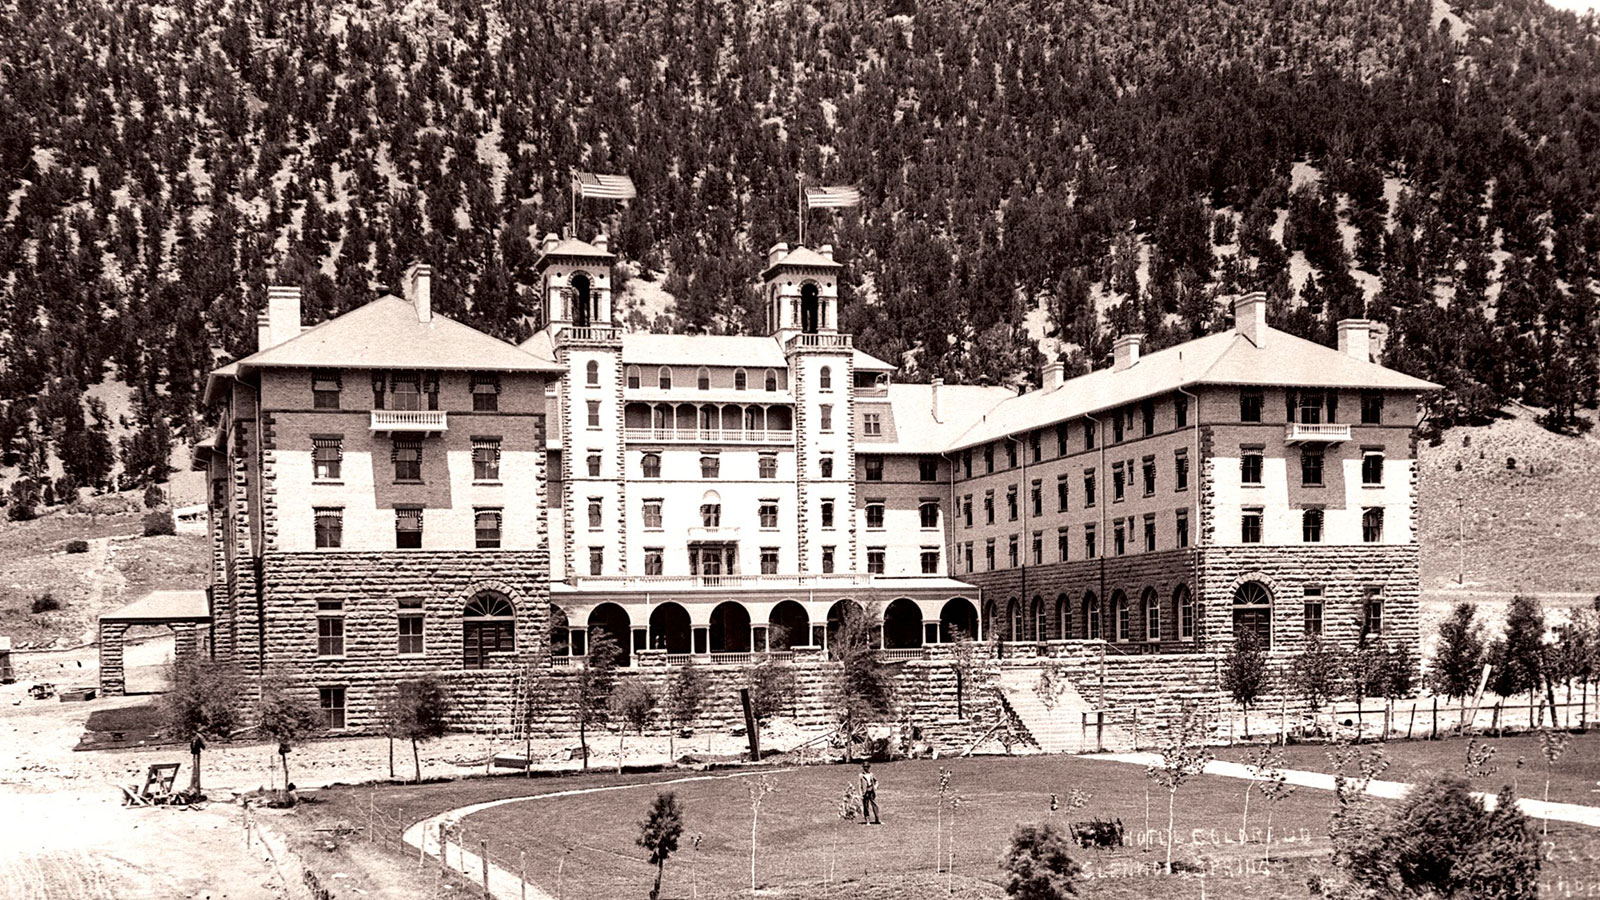 Historic image of hotel exterior at the Hotel Colorado, 1893, Member of Historic Hotels of America, Glenwood Springs, Colorado, History